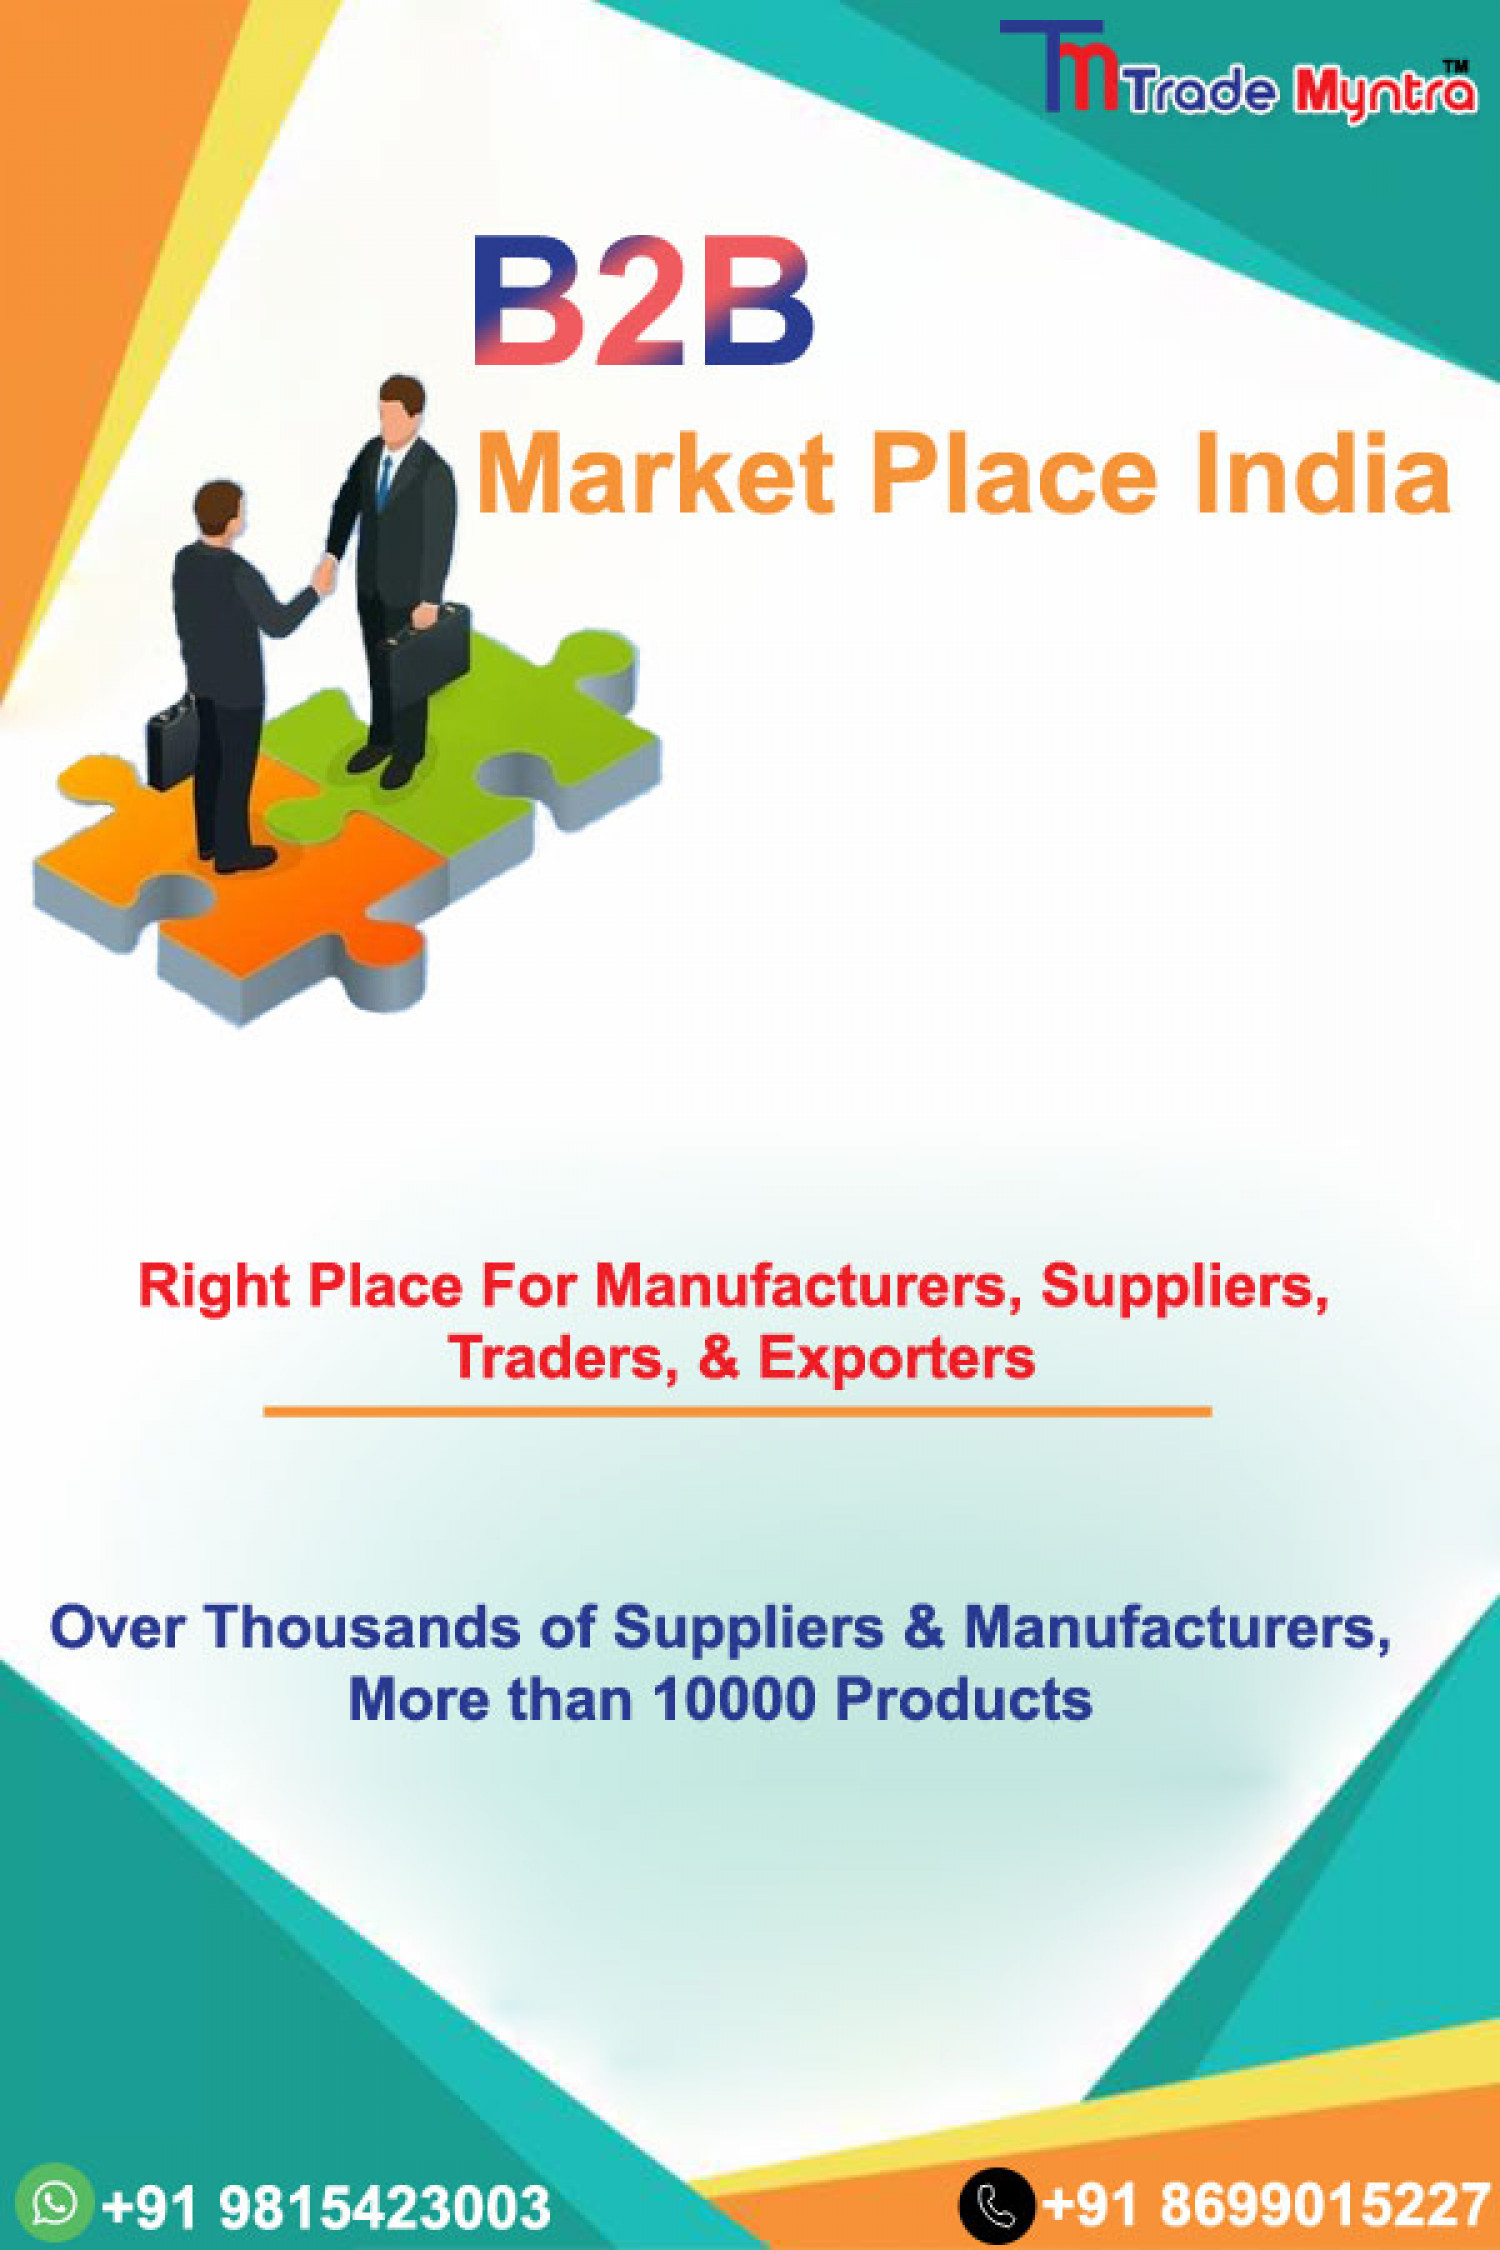 B2B Market Place in India - Trade Myntra Infographic